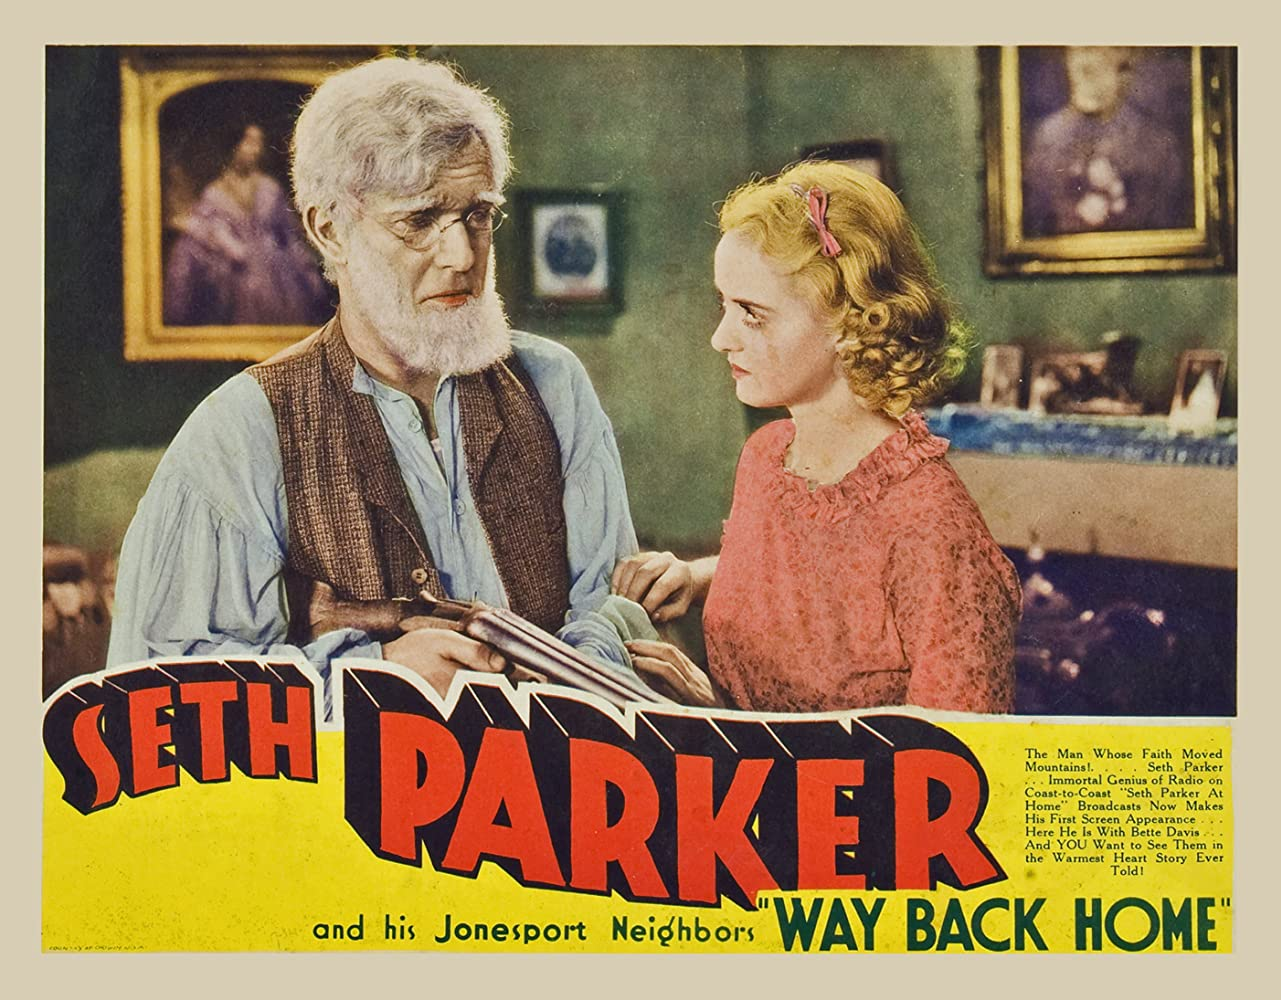 Way Back Home (1931)